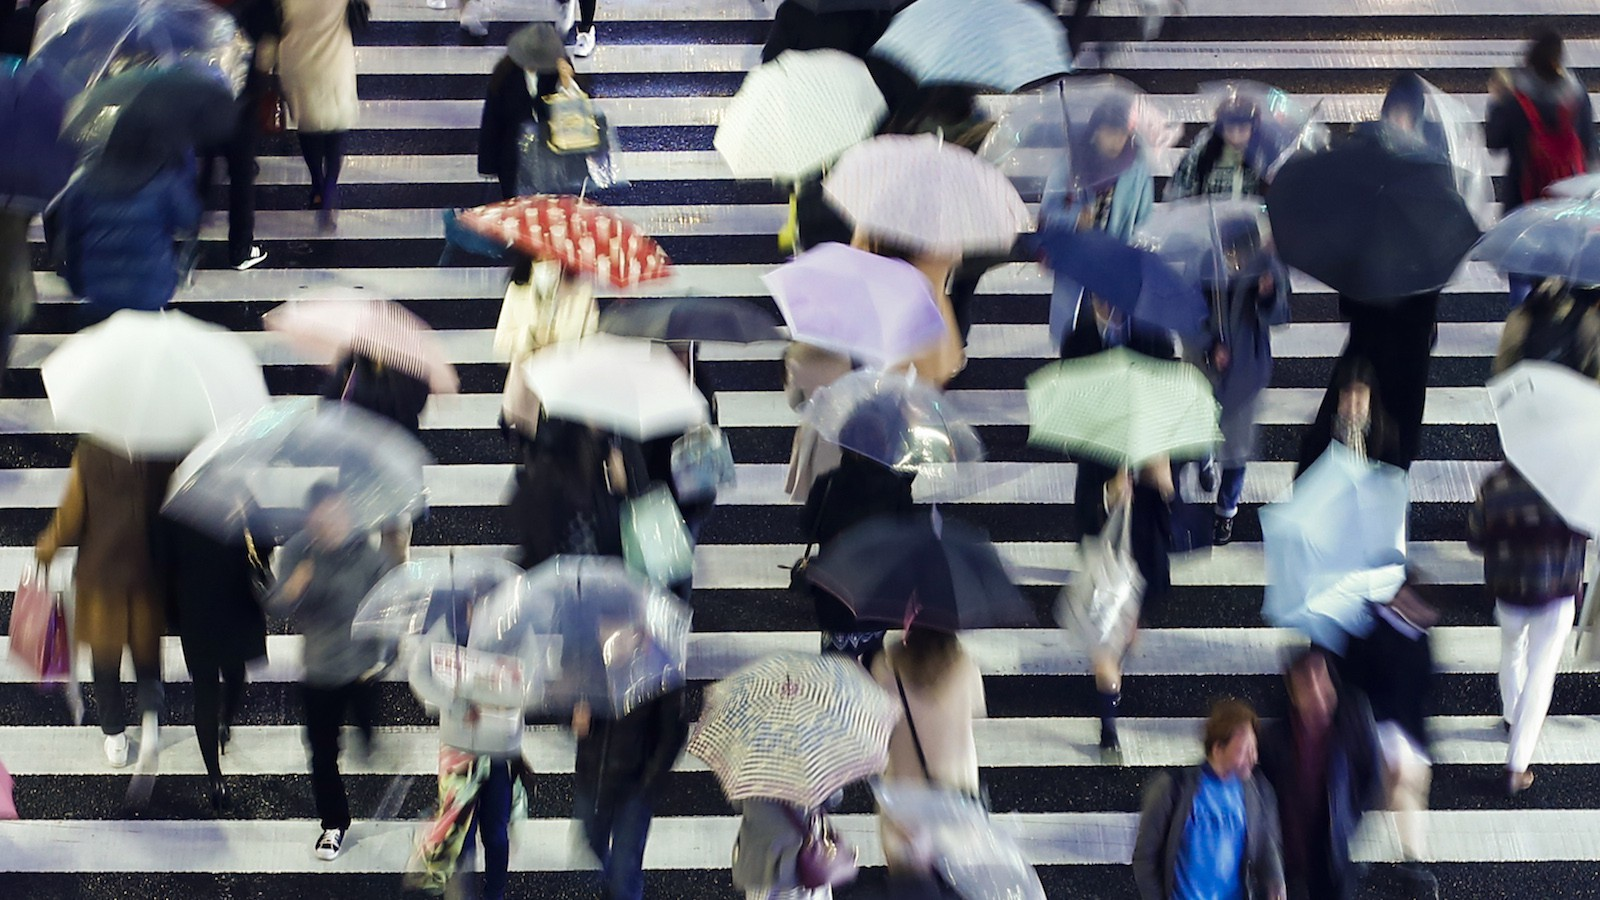 People carry umbrellas as they walk across a zebra crossing during heavy rain in Tokyo January 15, 2015. (JAPAN - Tags: ENVIRONMENT SOCIETY) - RTR4LITO